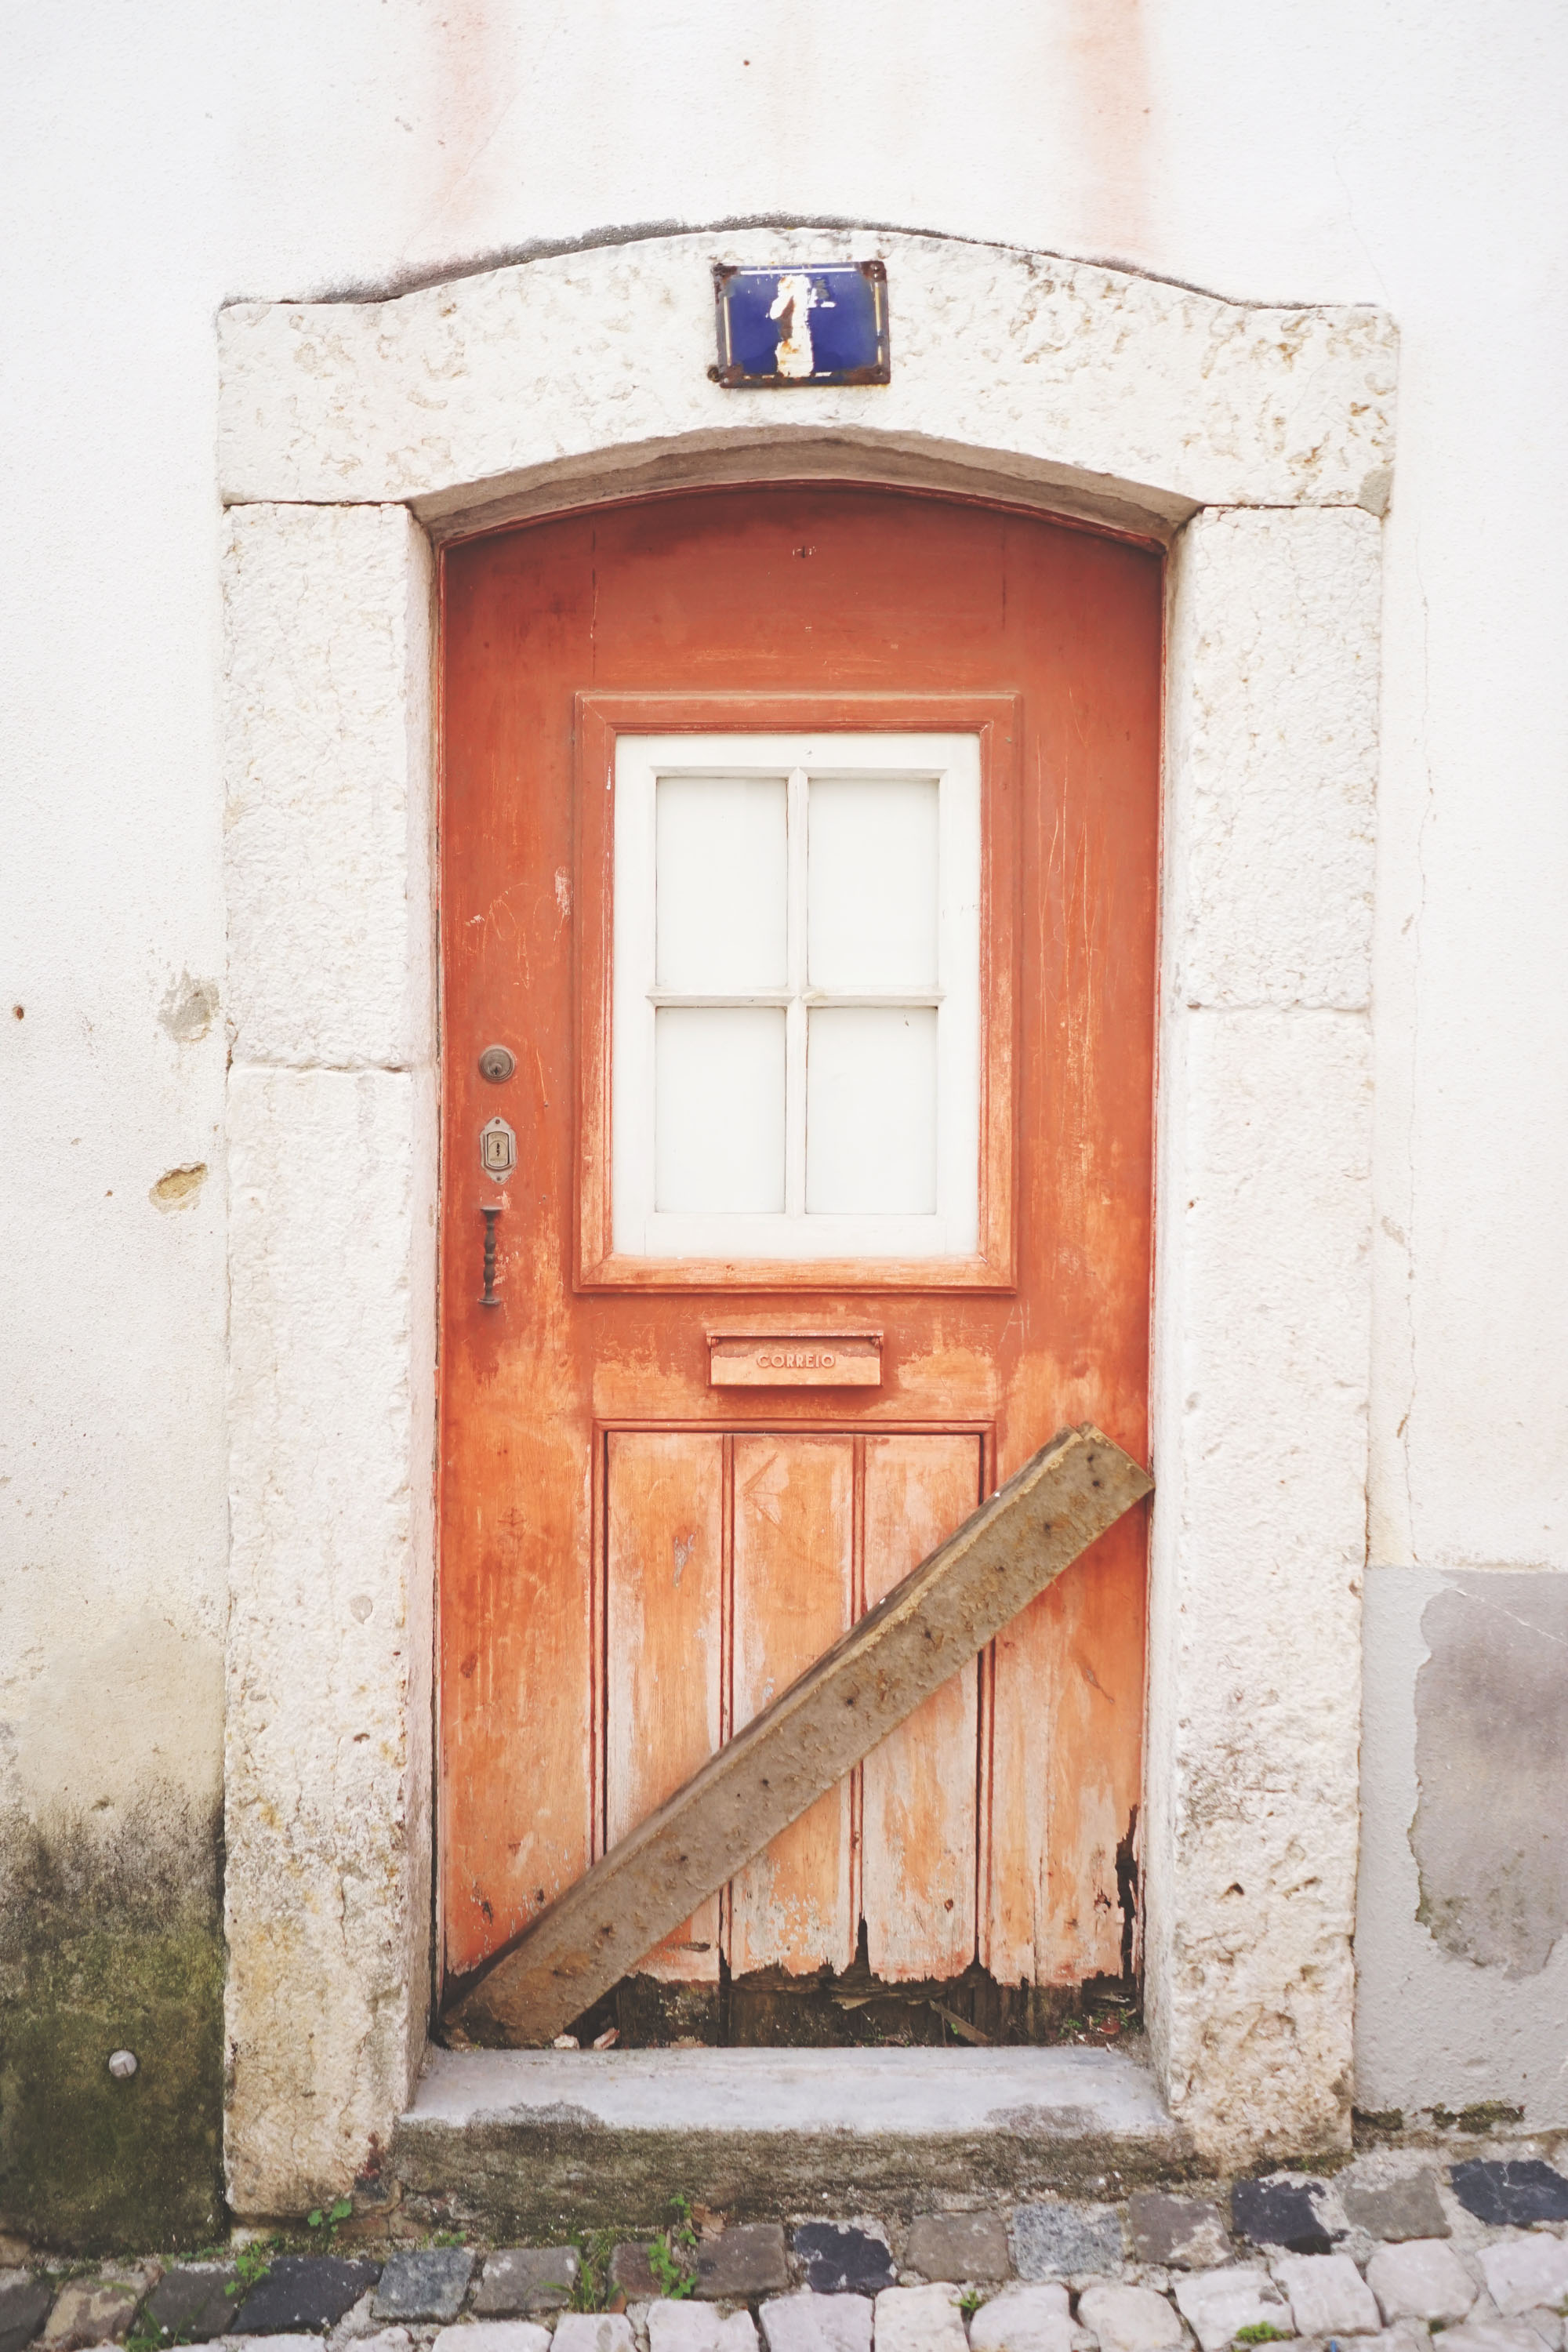 There's no shortage of doors you'll want to photograph, but trust us when we say they've most likely all been photographed at least a hundred times. AT LEAST.